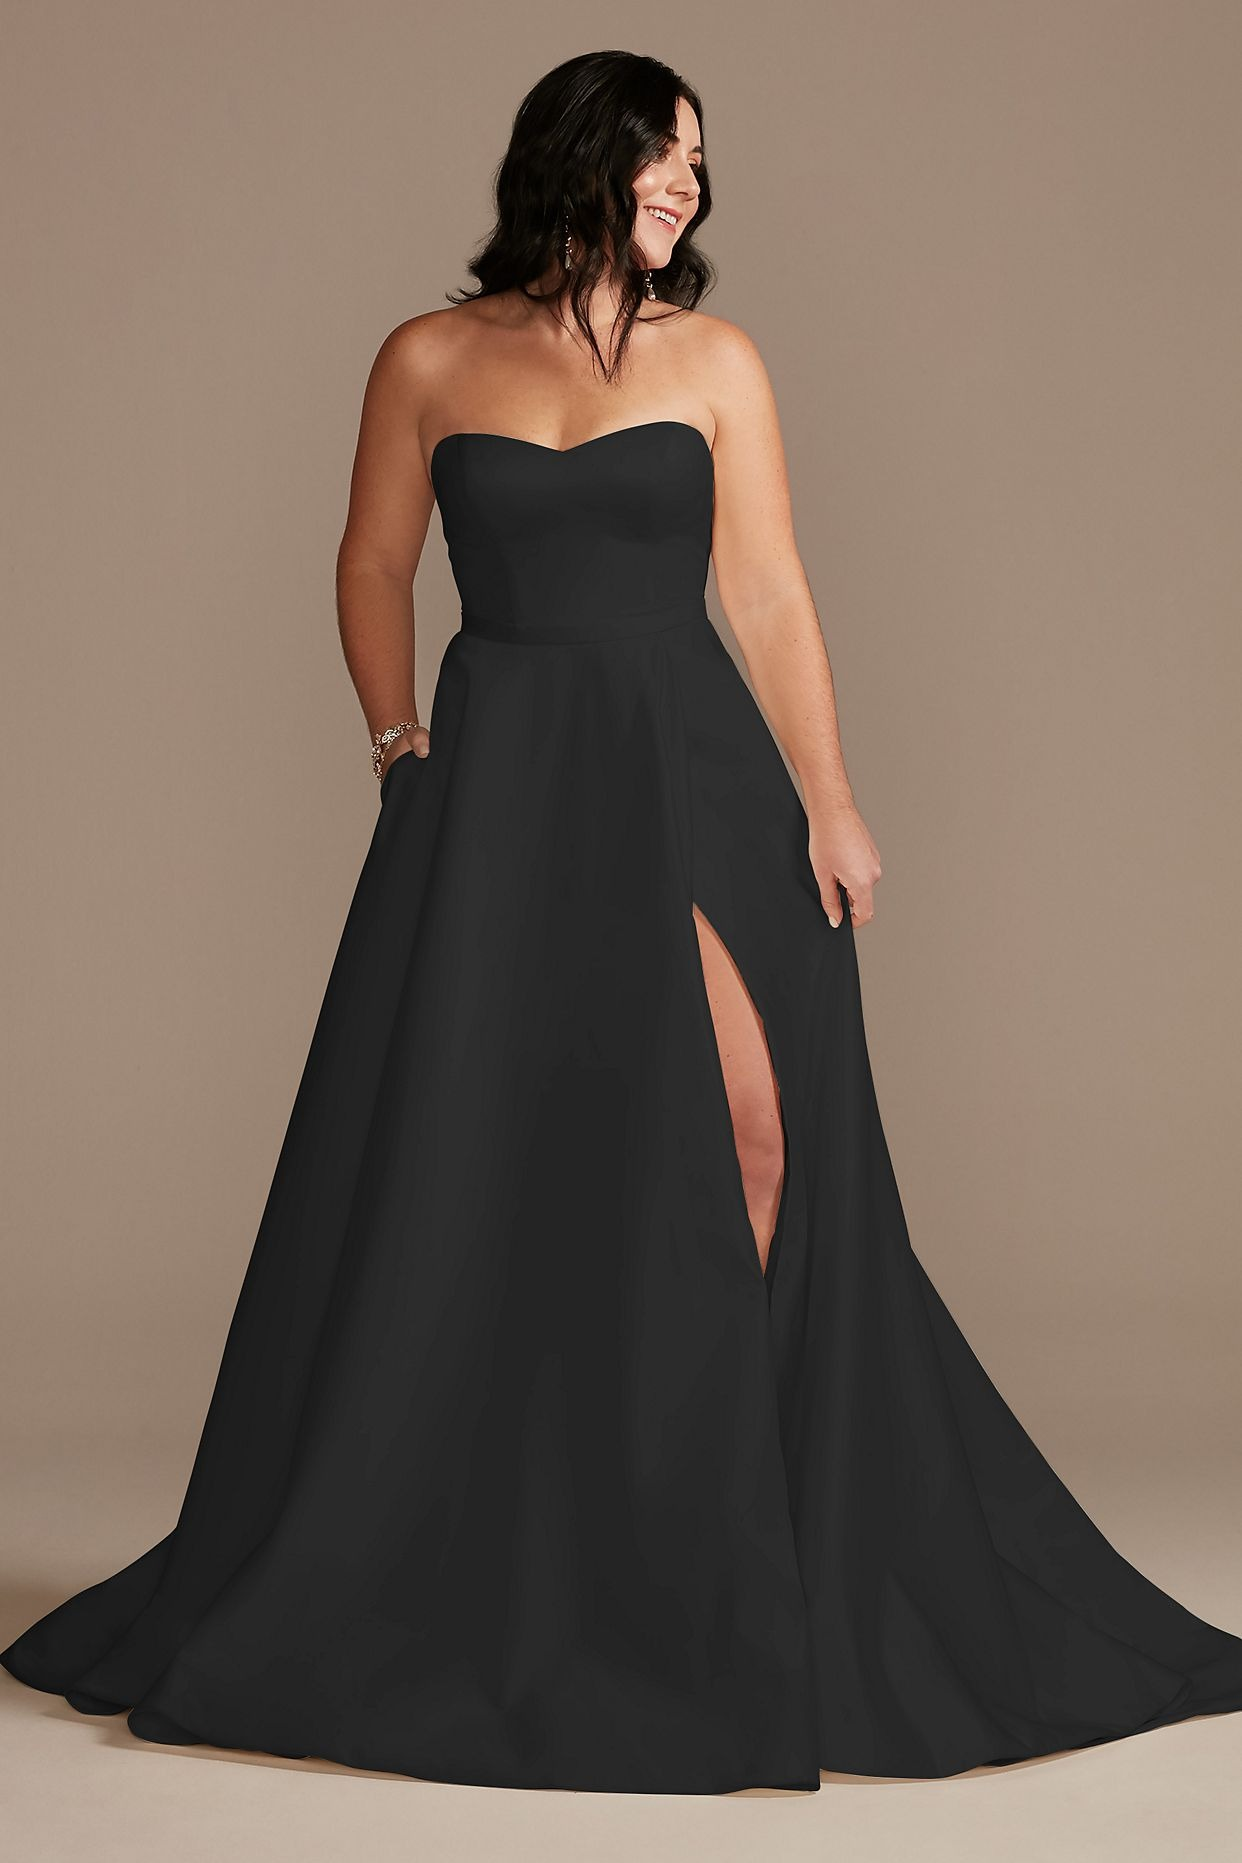 satin strapless black ballgown with pockets from Davids Bridal